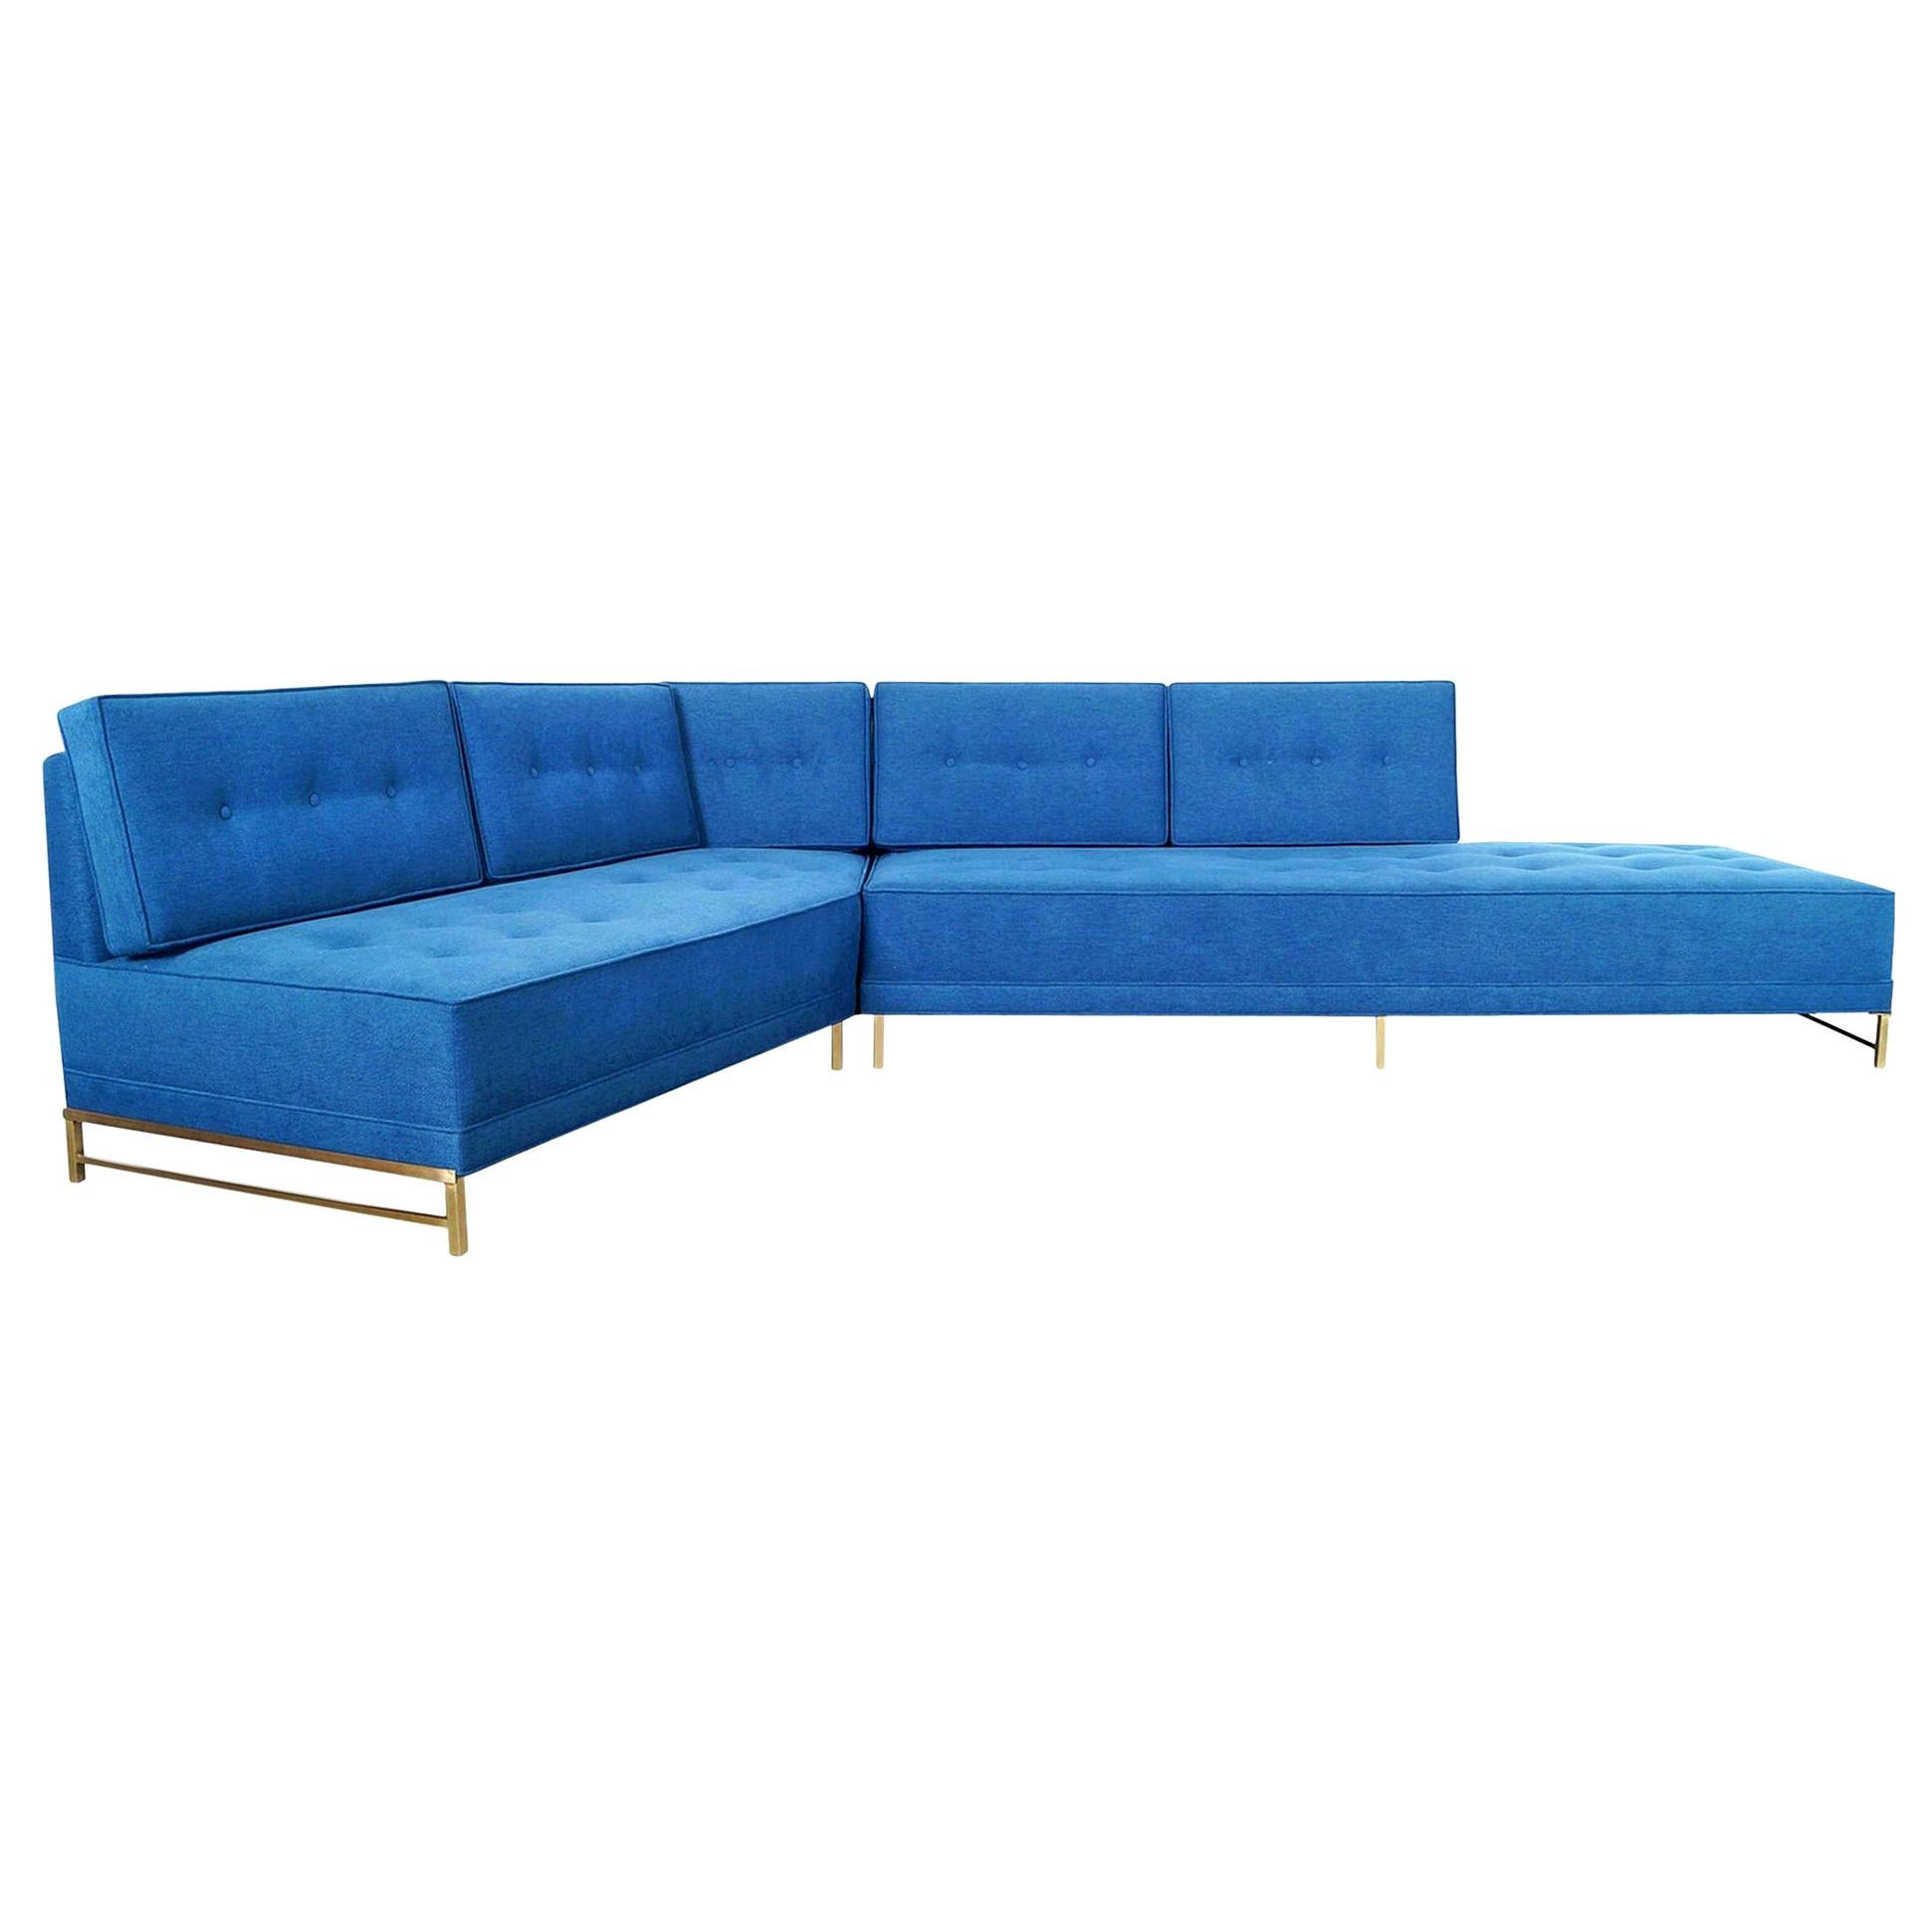 Vintage Brass Sectional Sofa by Paul McCobb for Directional